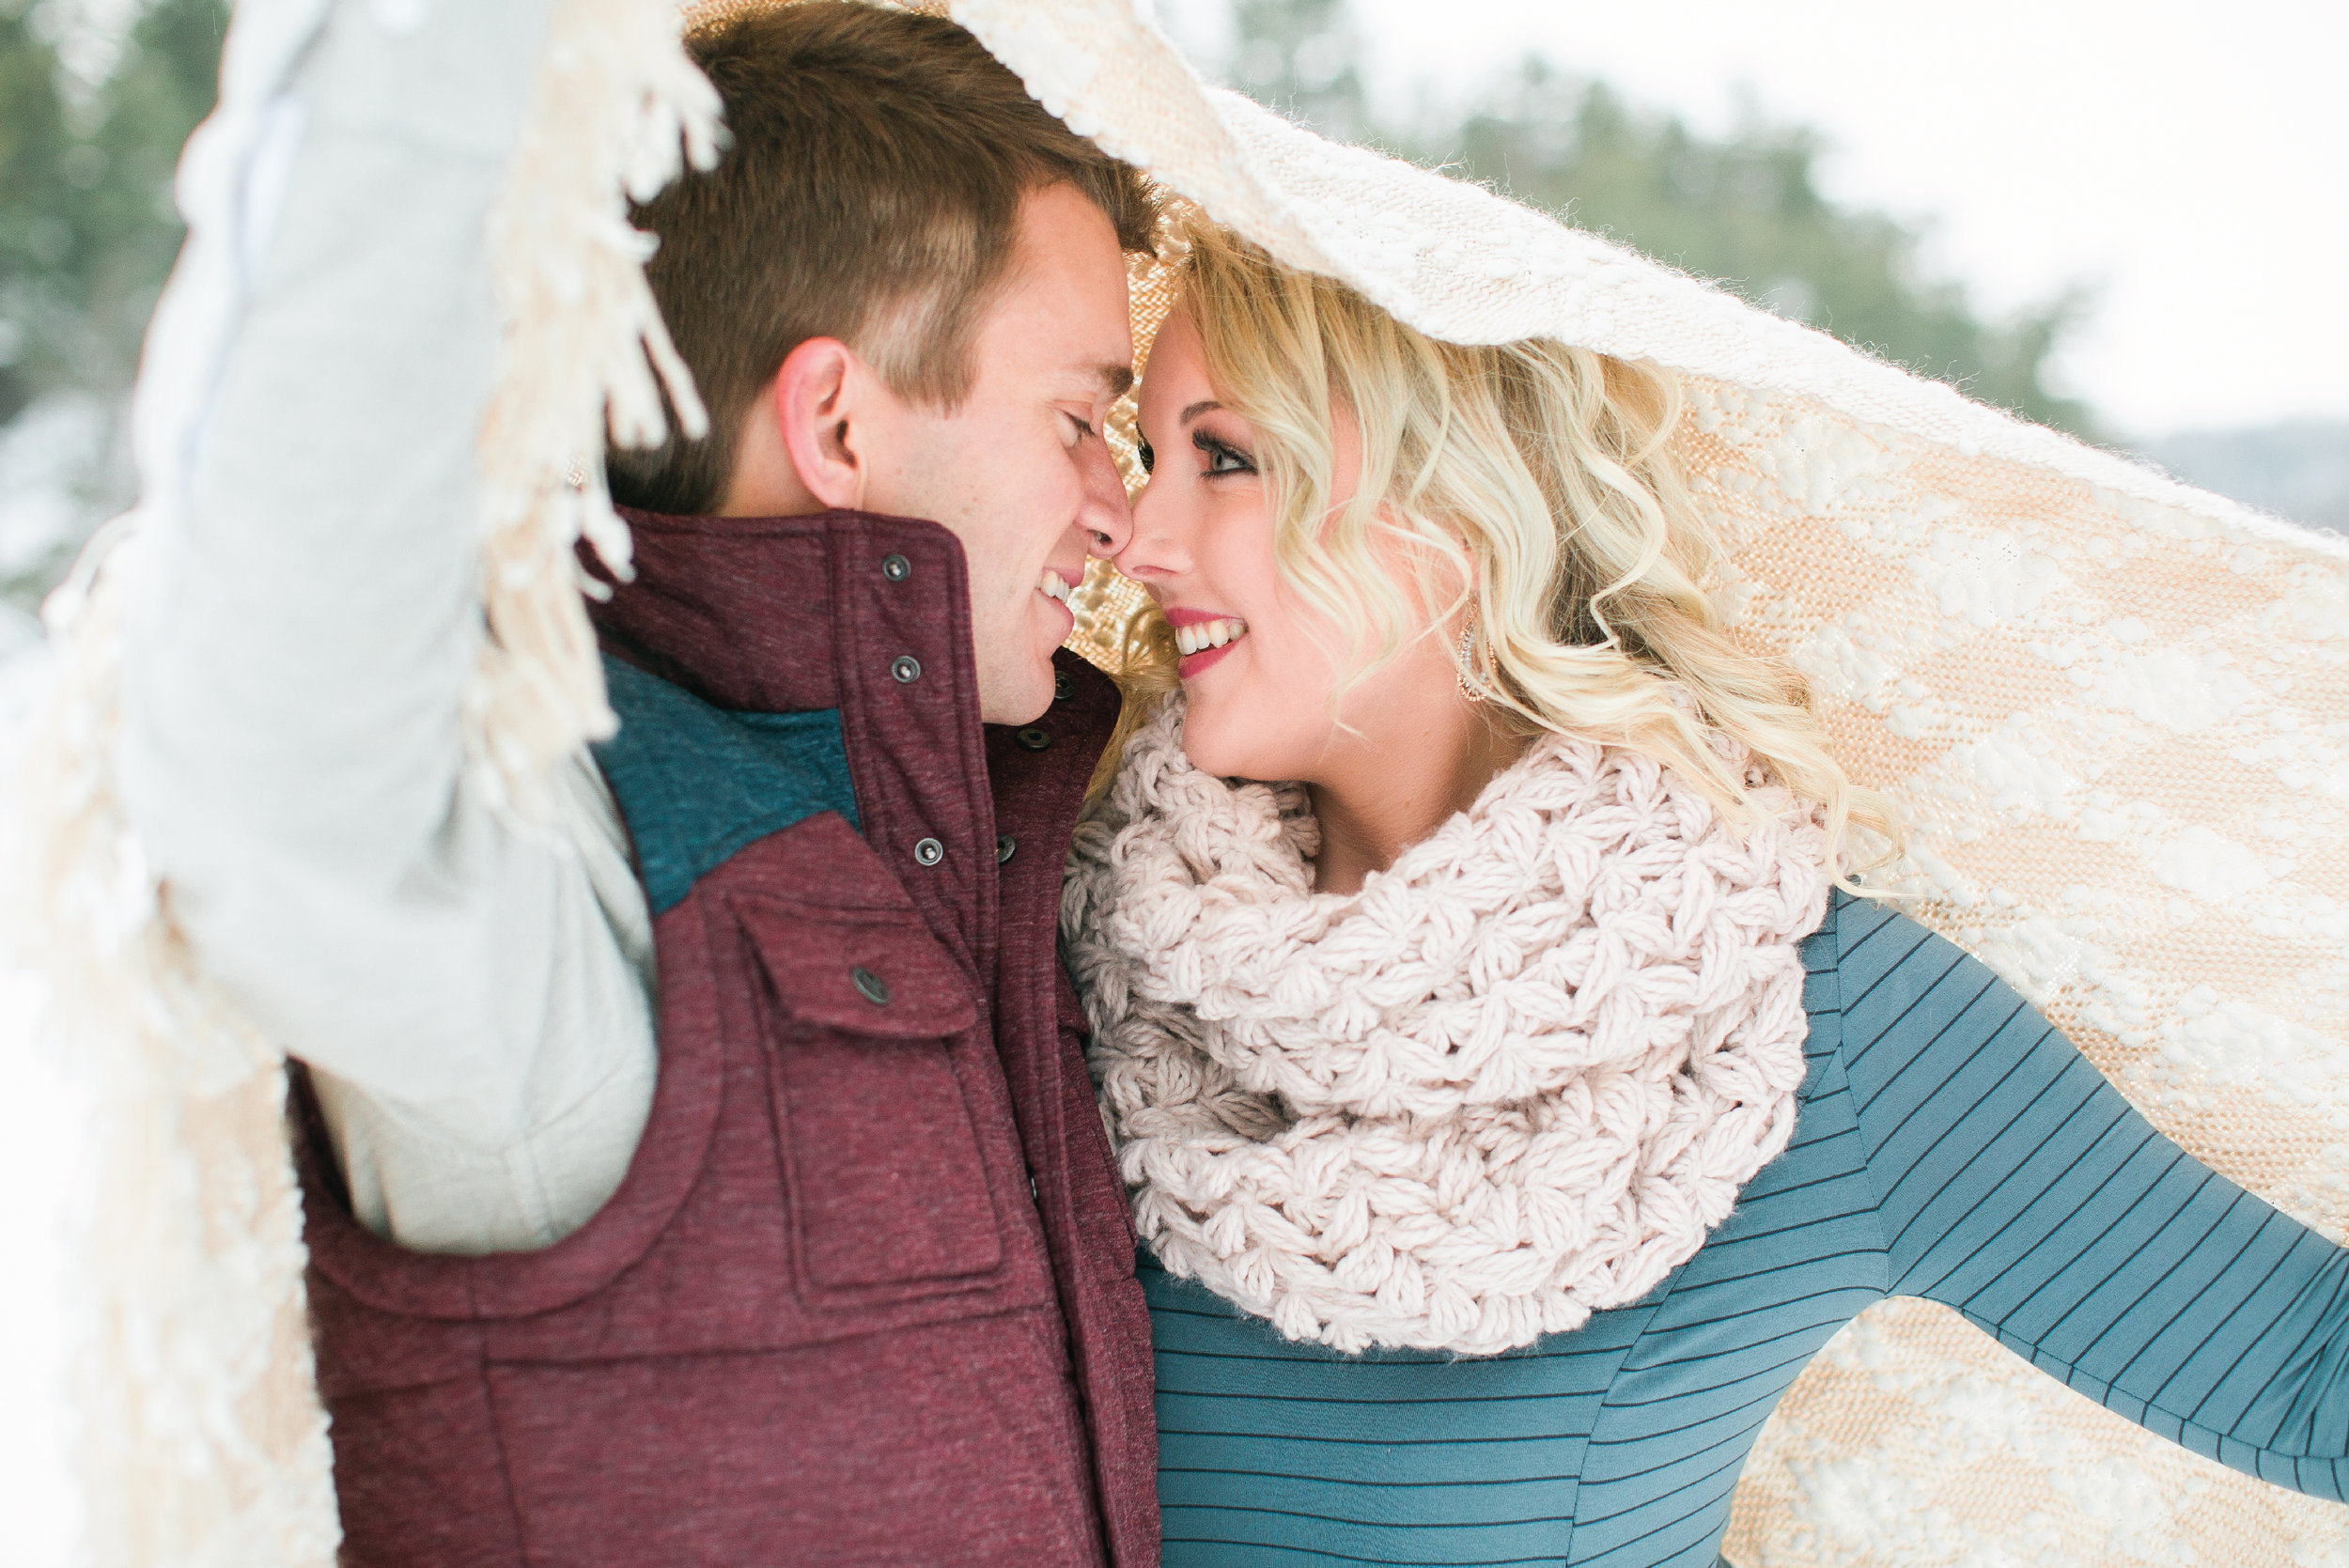 Taylors Falls Minnesota snowy winter engagement session with couple under blanket